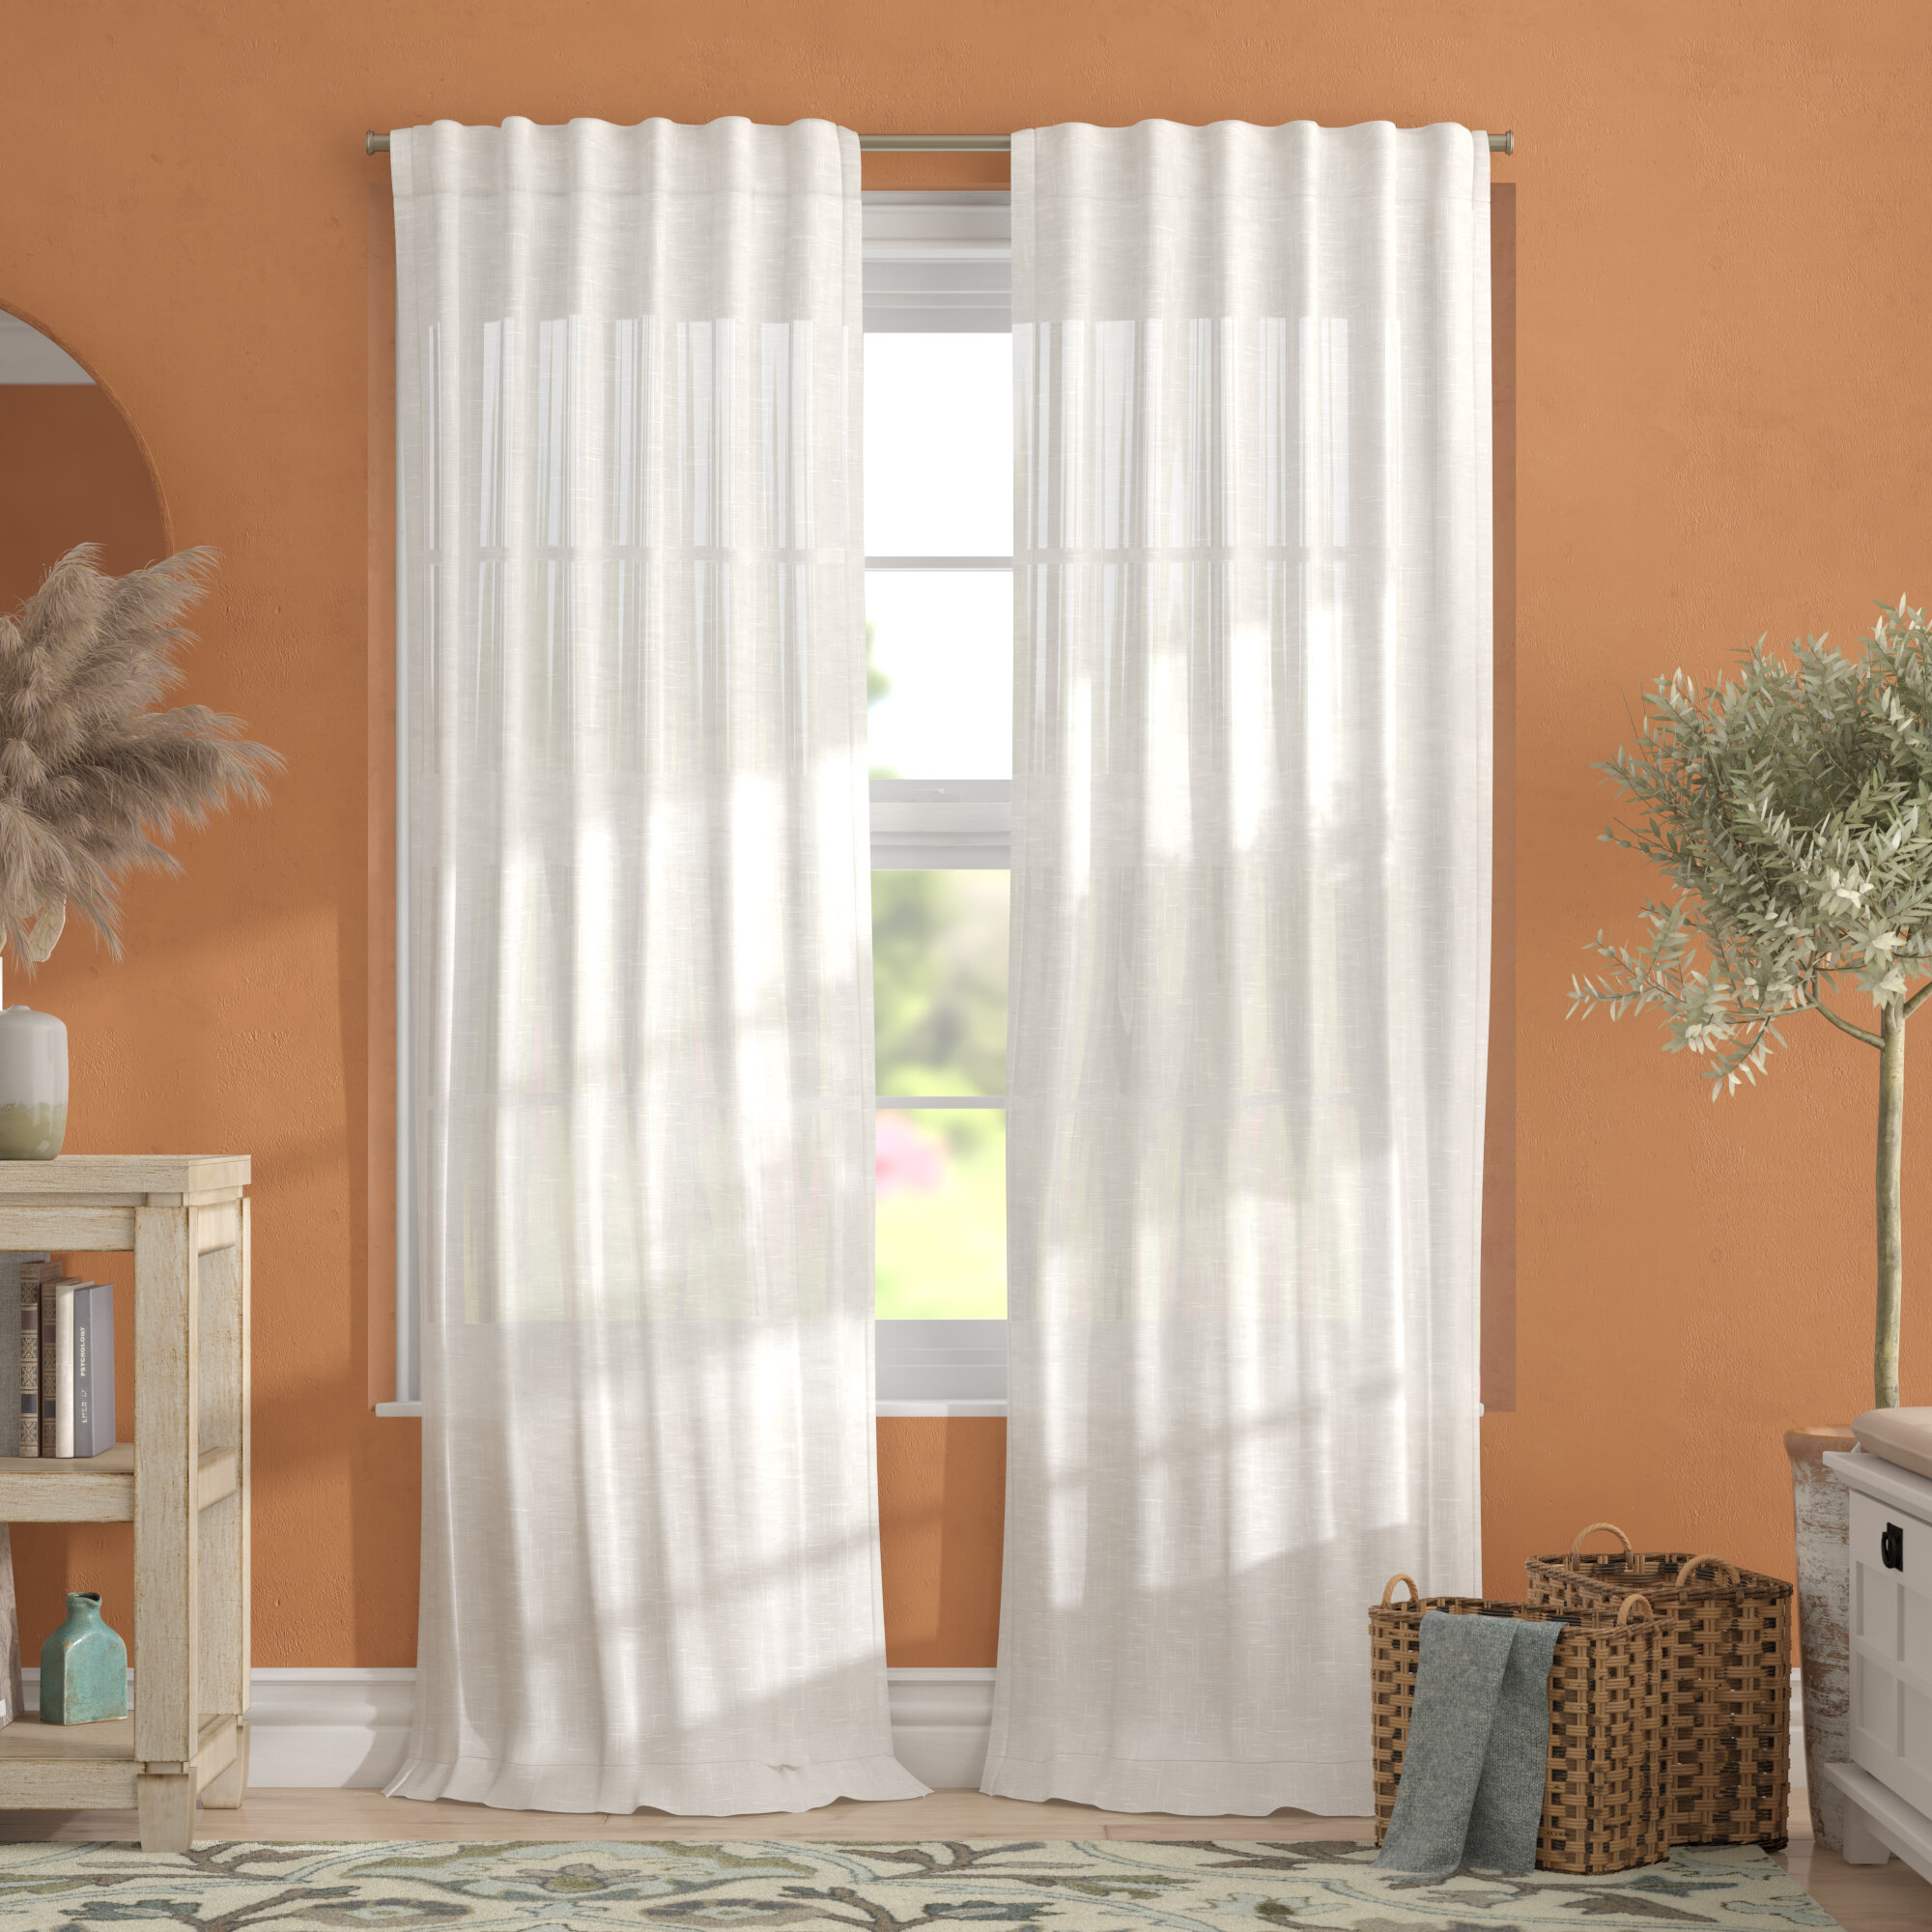 Alcott Hill Leon Solid Sheer Tab Top Curtain Panels Pertaining To Vue Elements Priya Tab Top Window Curtains (View 14 of 30)